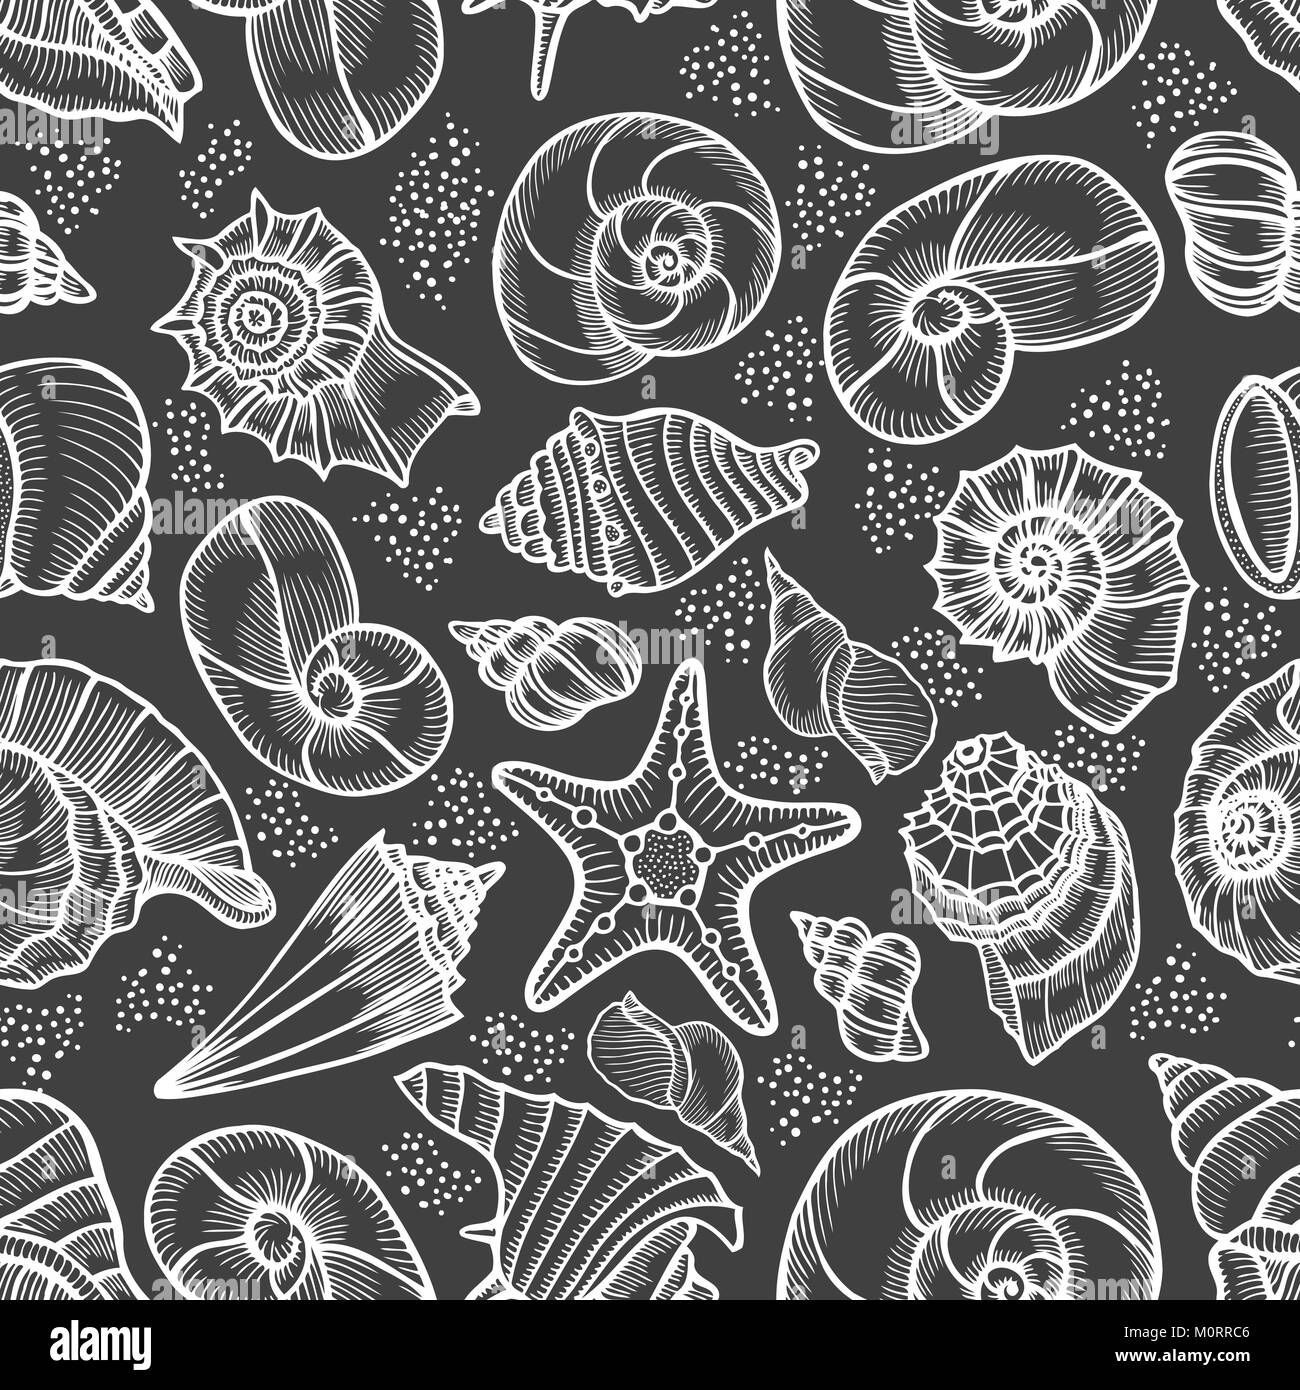 Seamless pattern tile wallpaper of Hand drawn Collection of seashells in line art style on blue background. Ocean - Stock Image